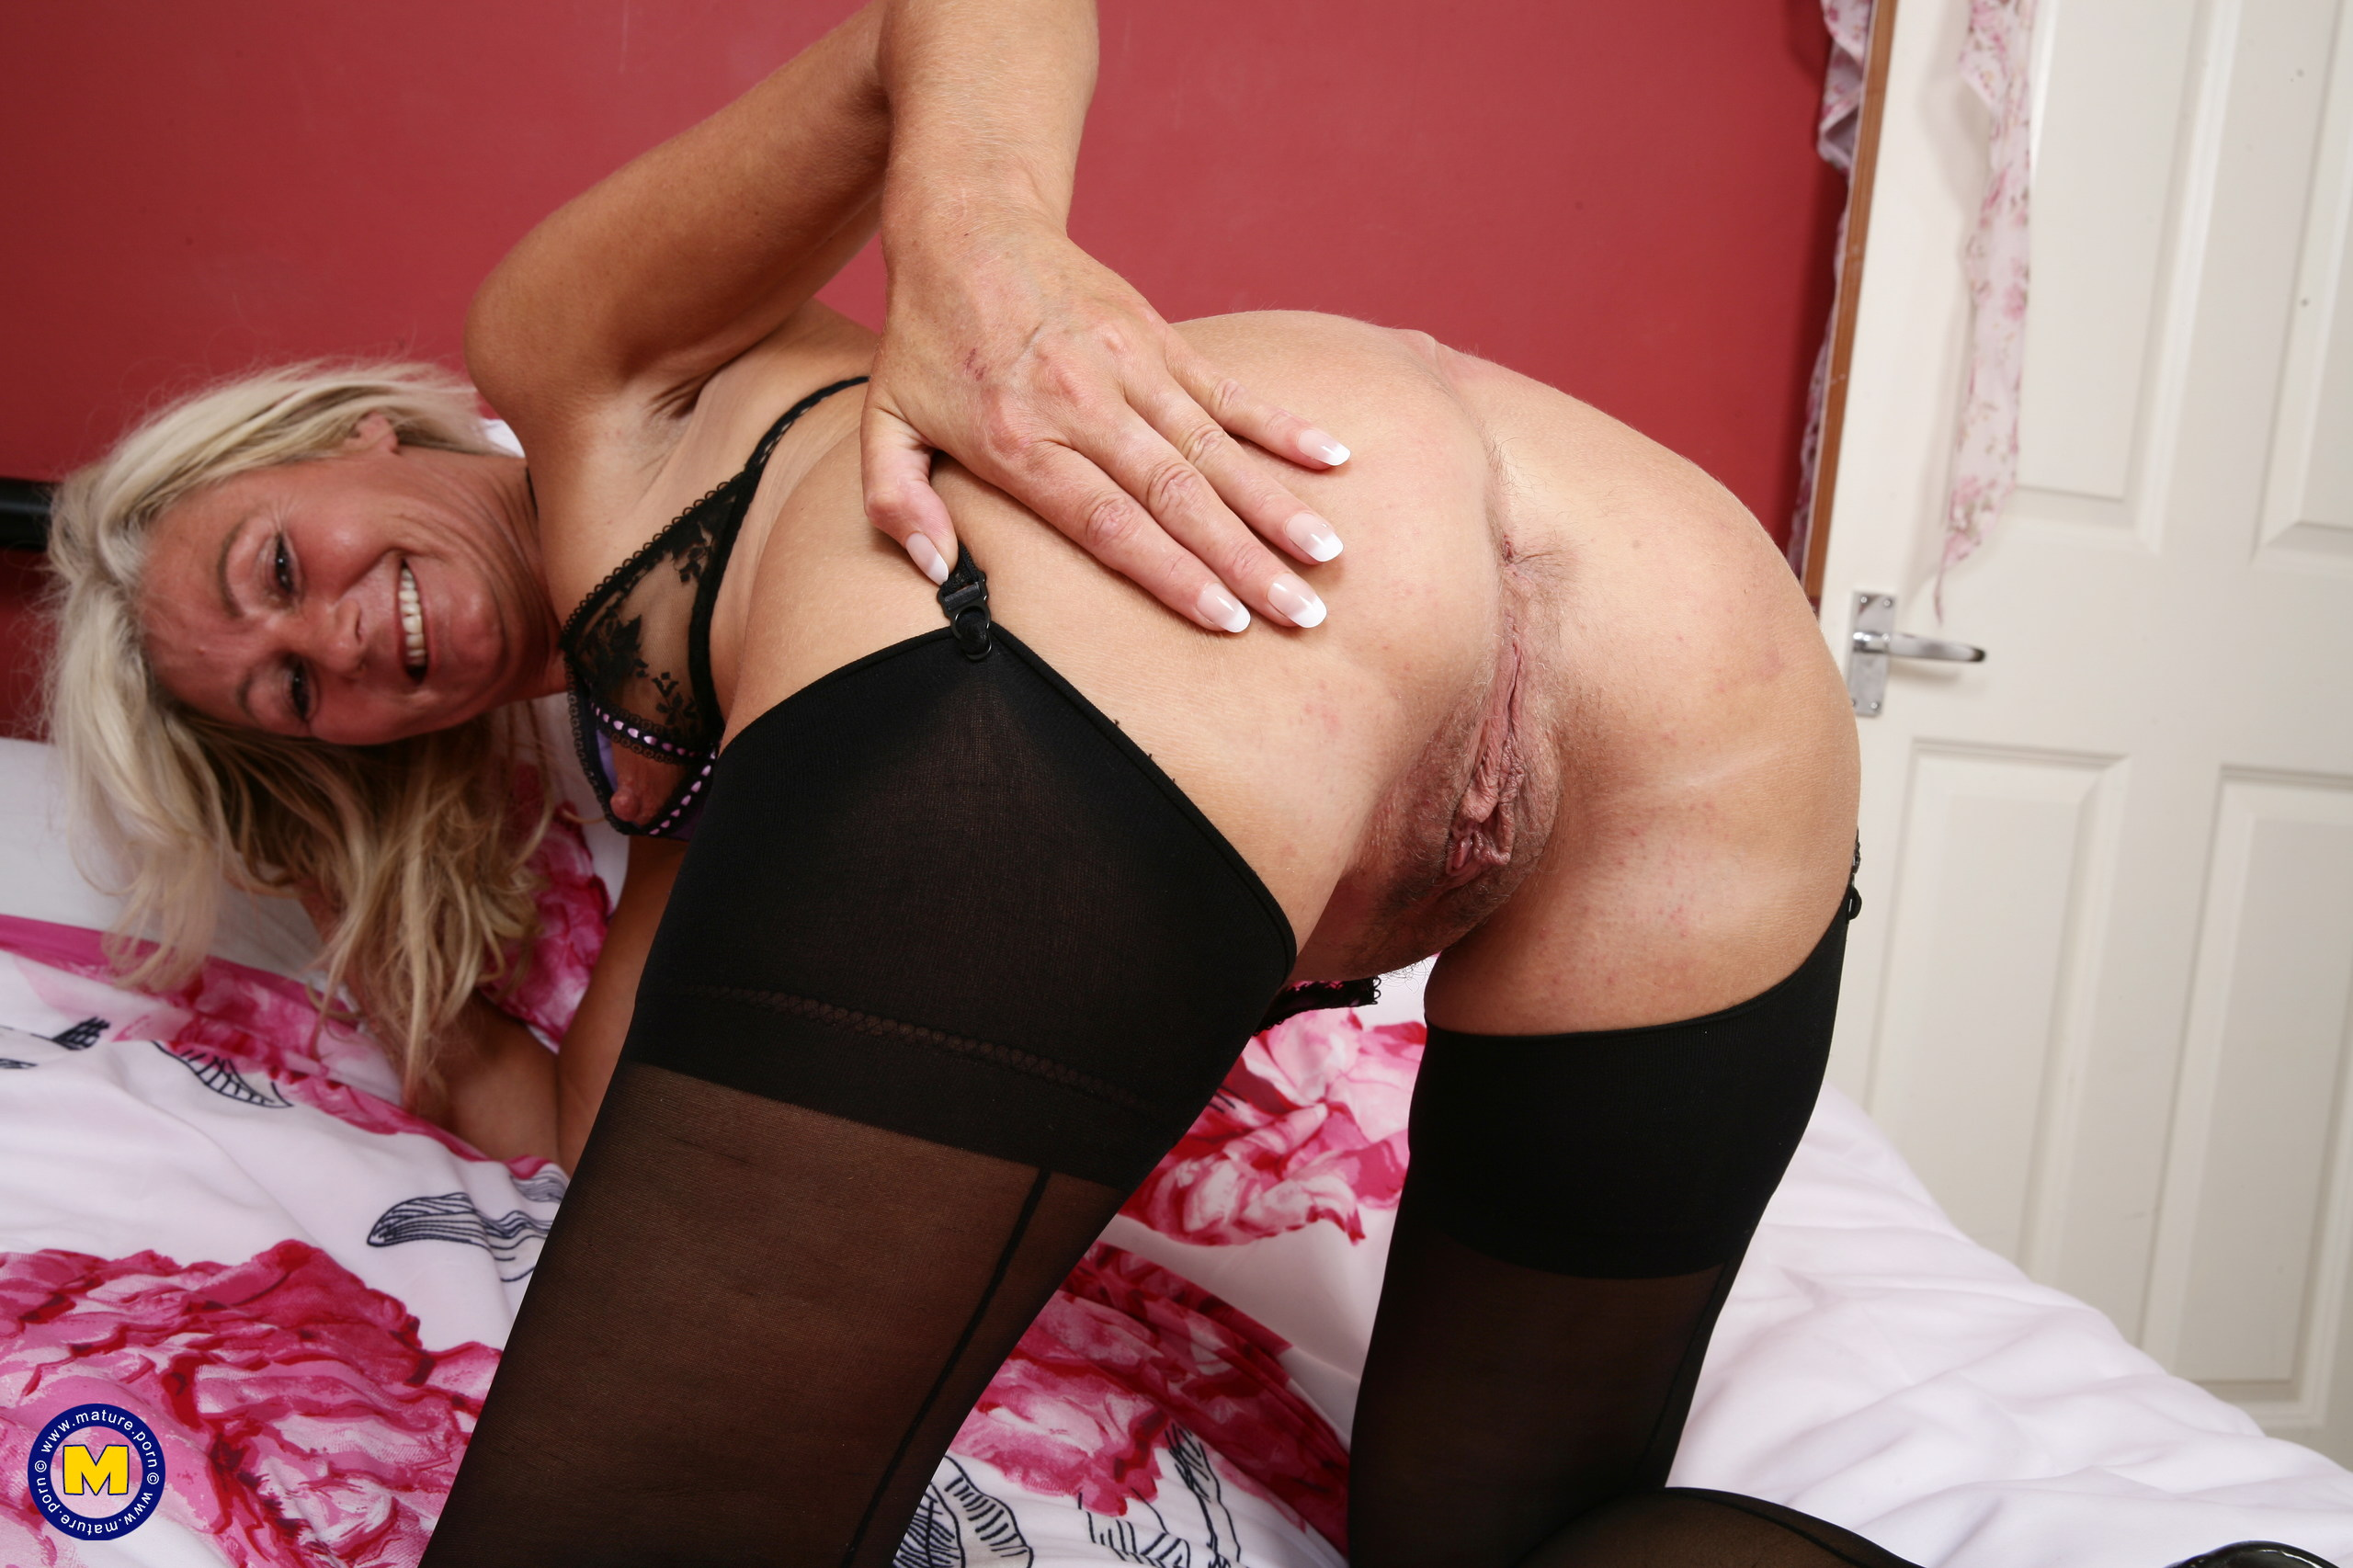 Crazy housewife from the uk playing with herself